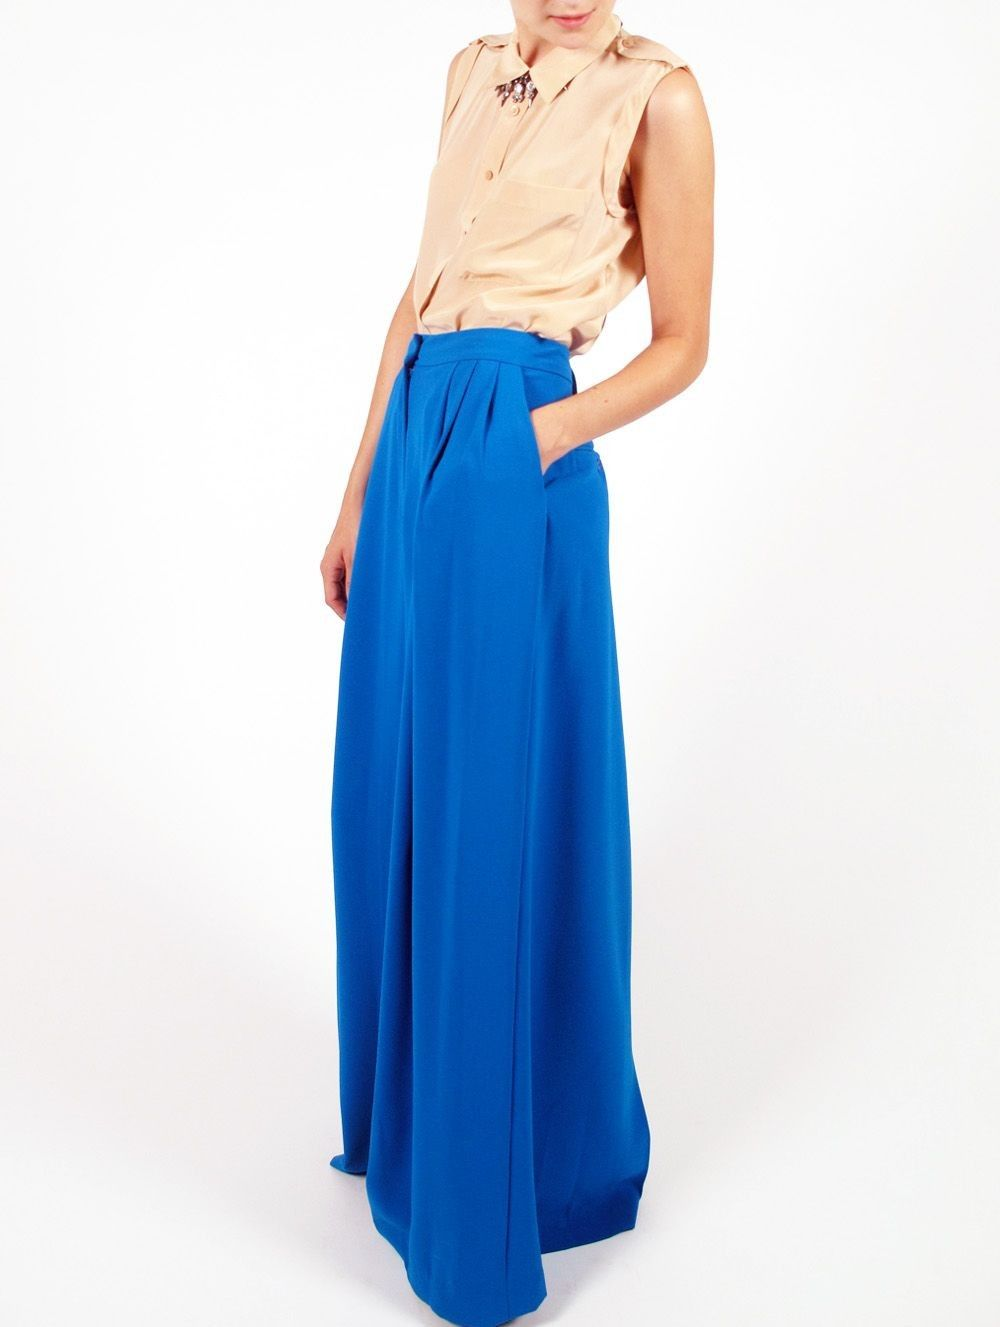 Gaudenzia long skirt by malene birger maxi skirt feminie